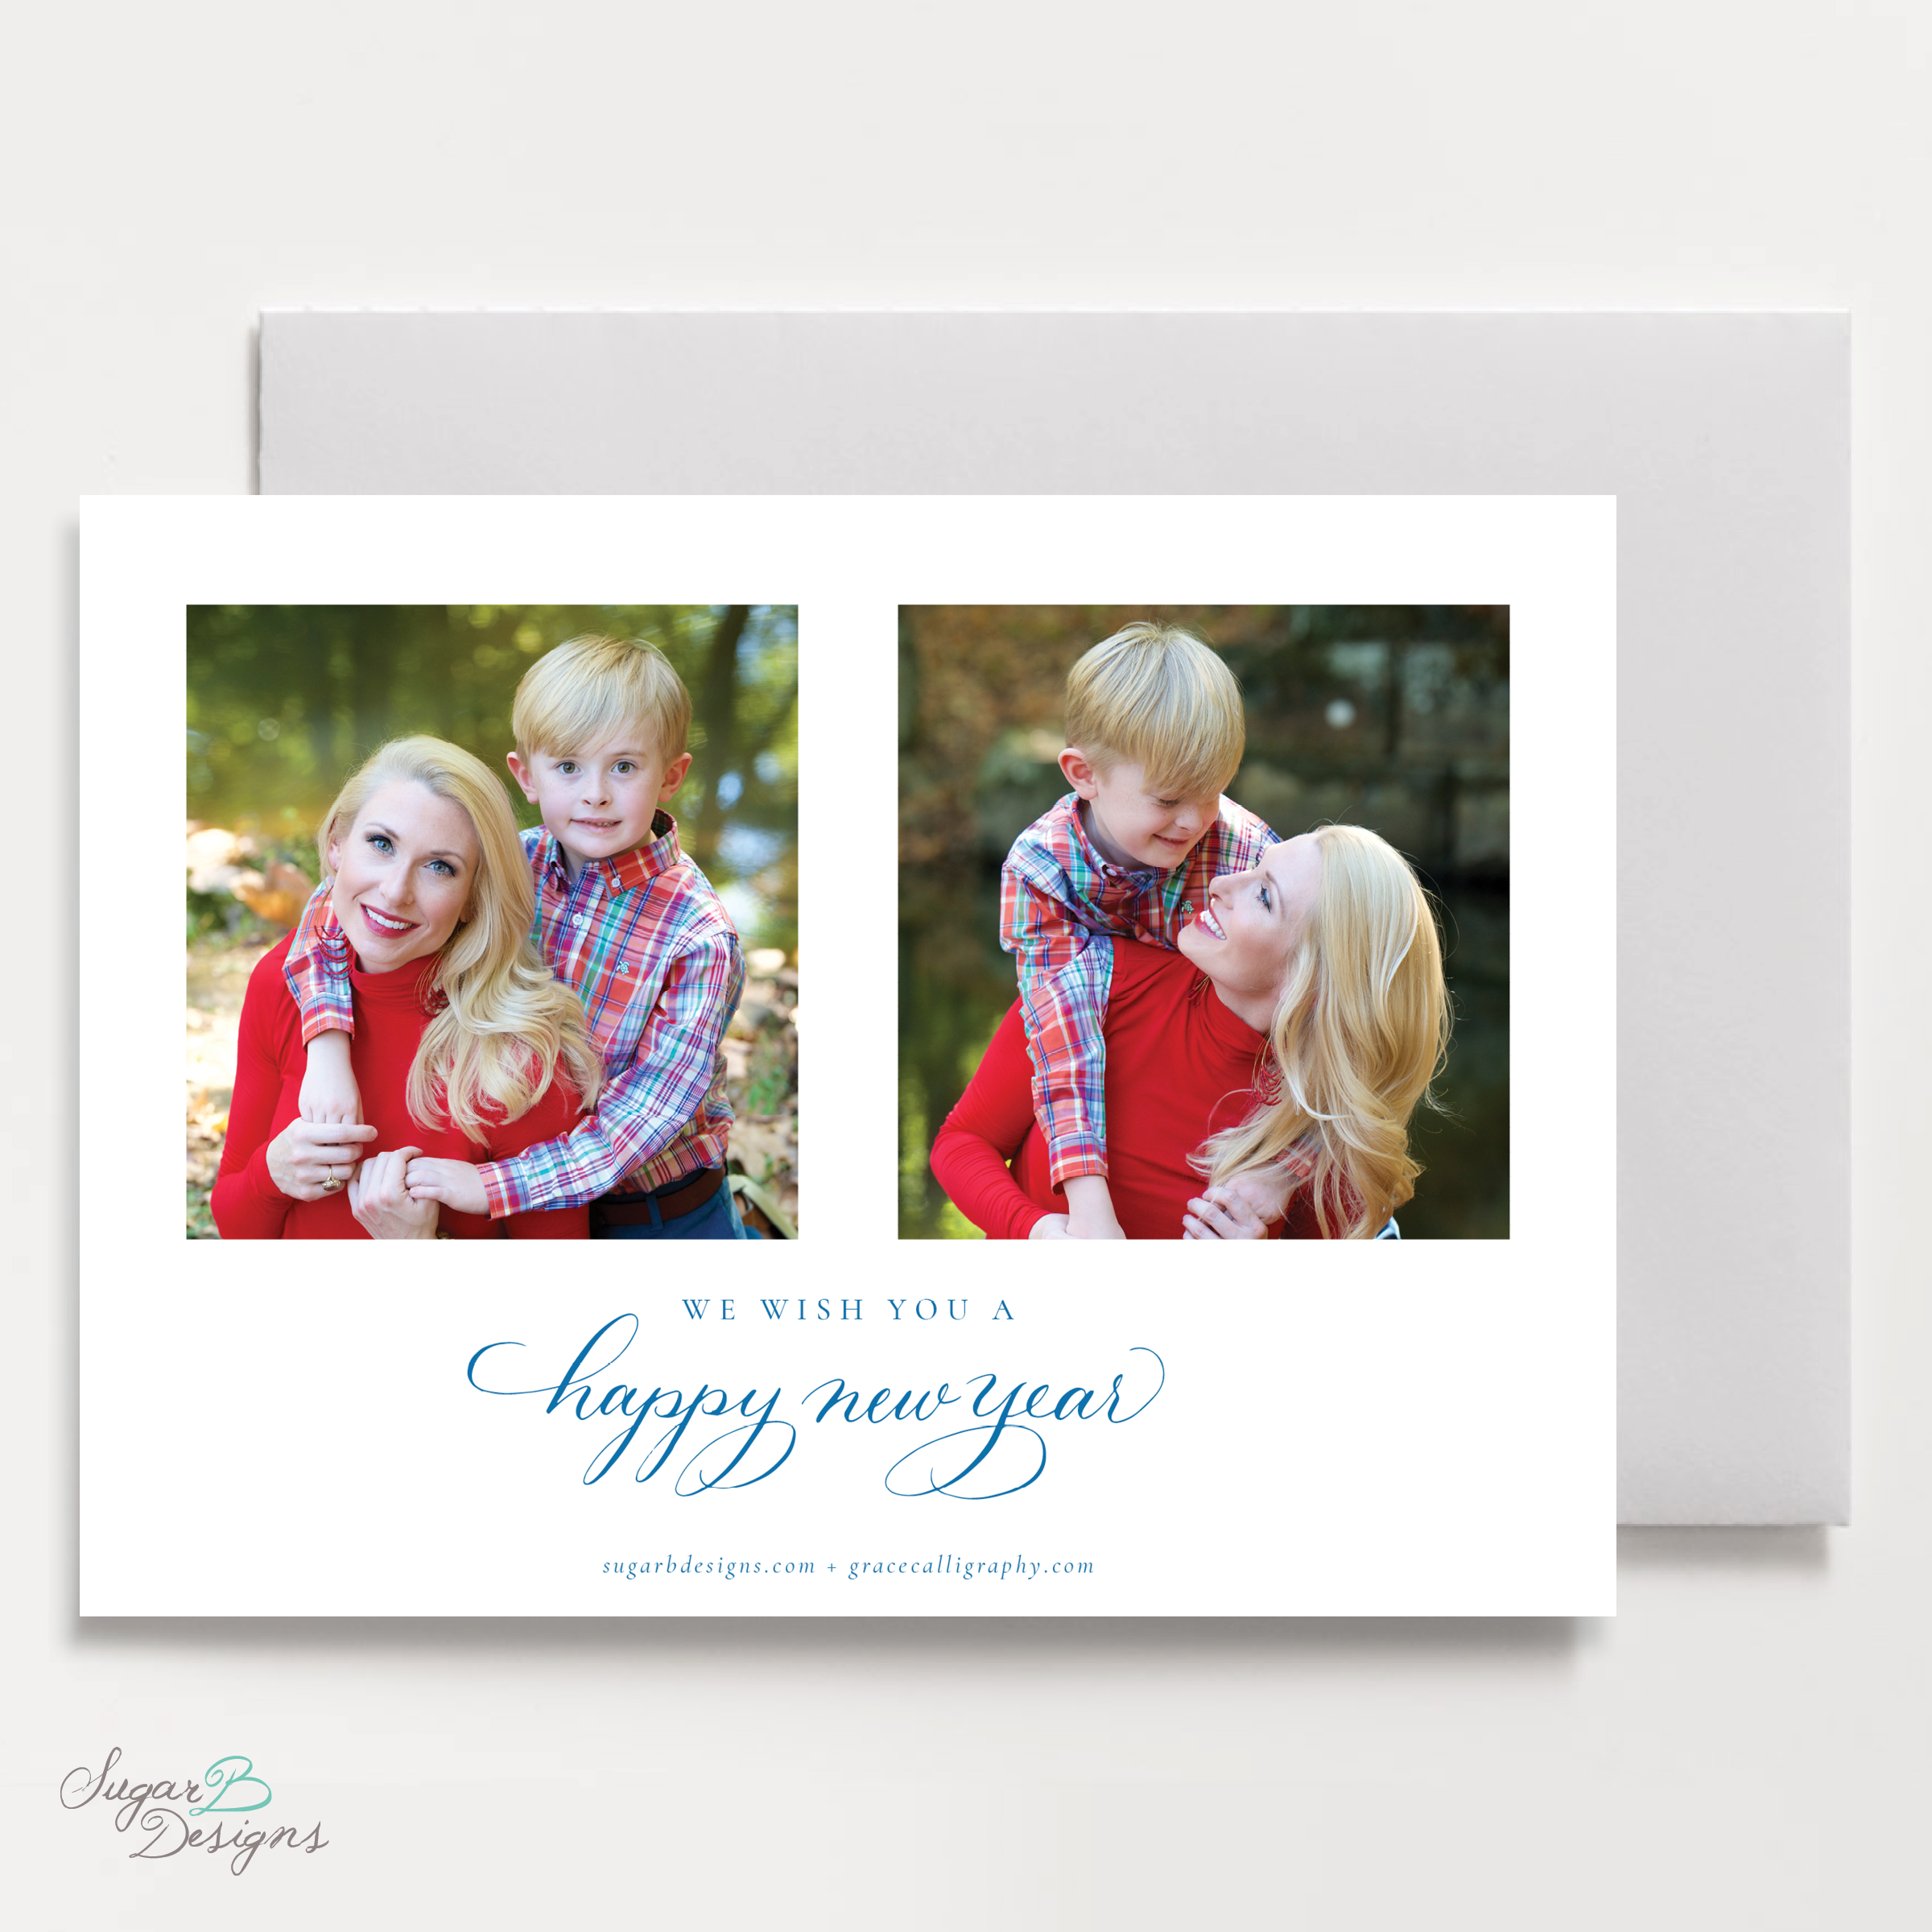 Royal Wreath Blue Landscape back Christmas Card by Sugar B Designs.png